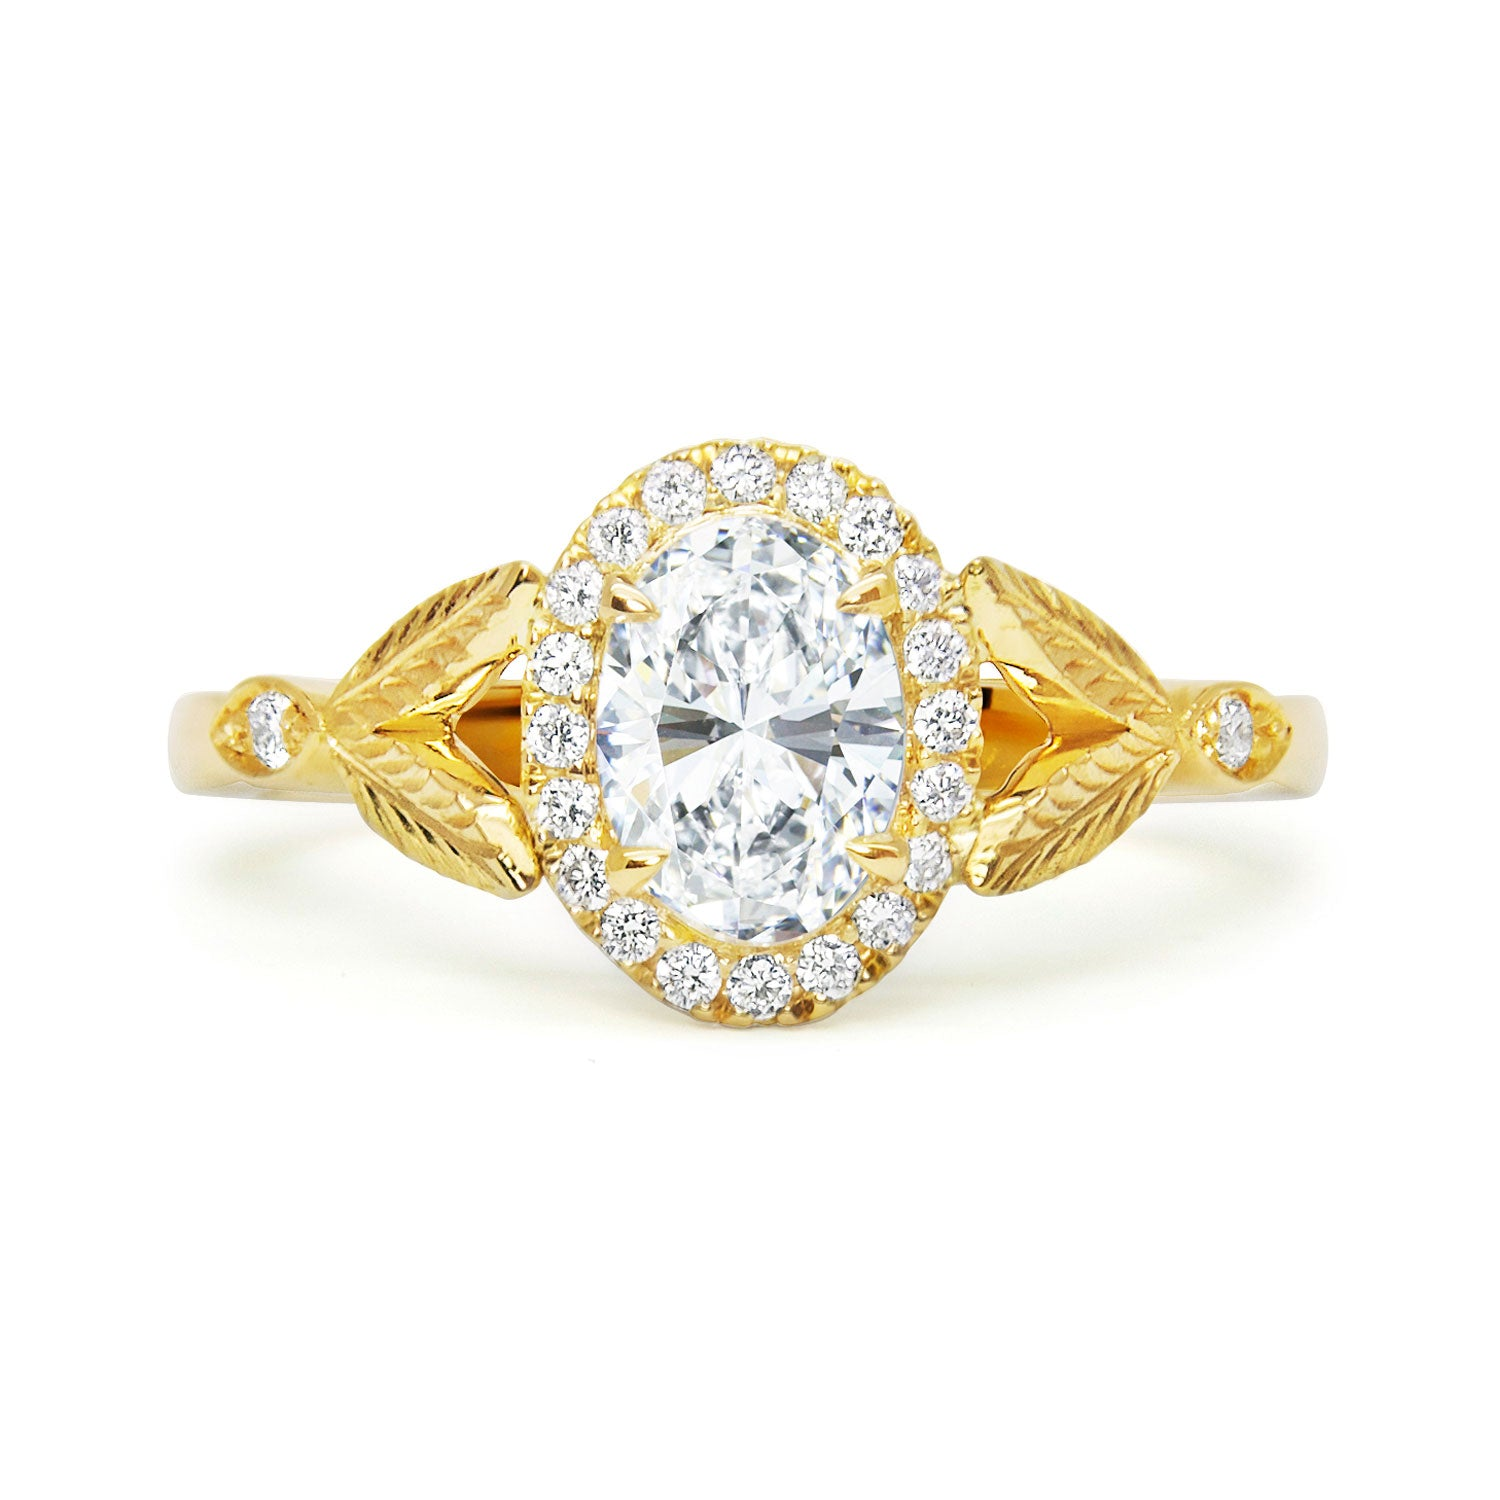 Bespoke Oval Diamond Nature Inspired Jamie Engagement Ring